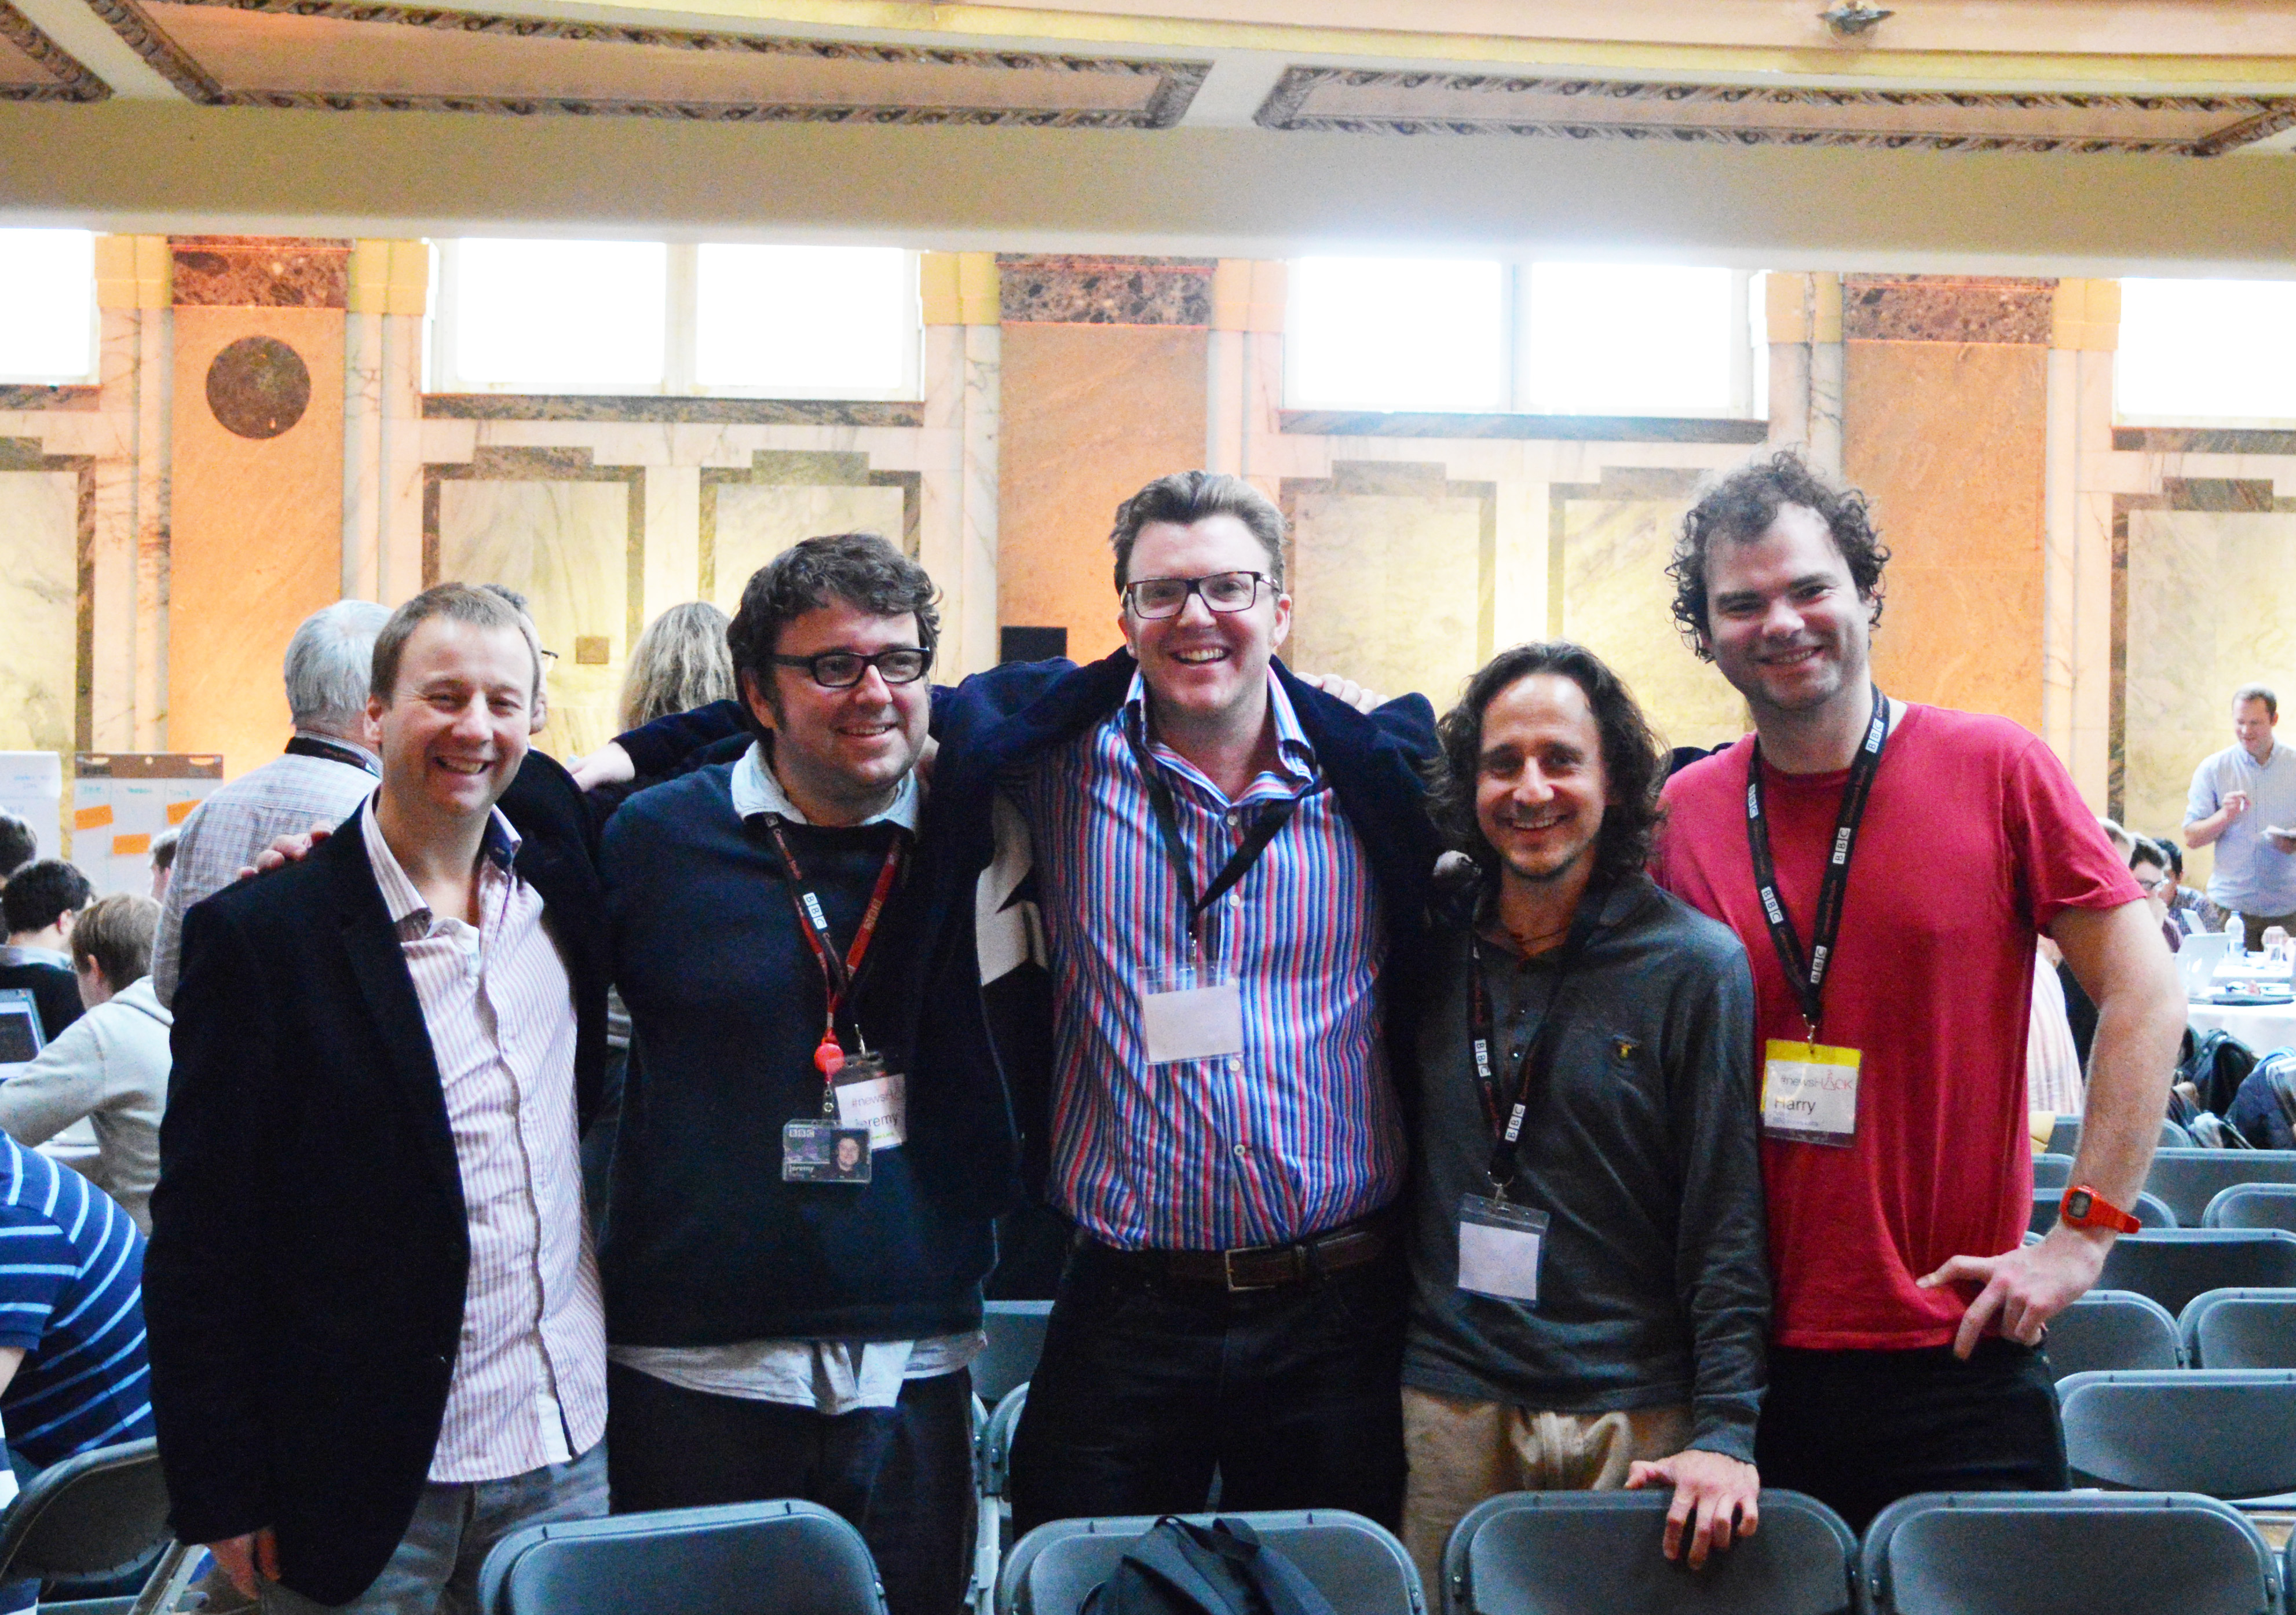 The News Juicer, News Labs API, and Storyliner team, and I, at #newsHACK London, October 2013